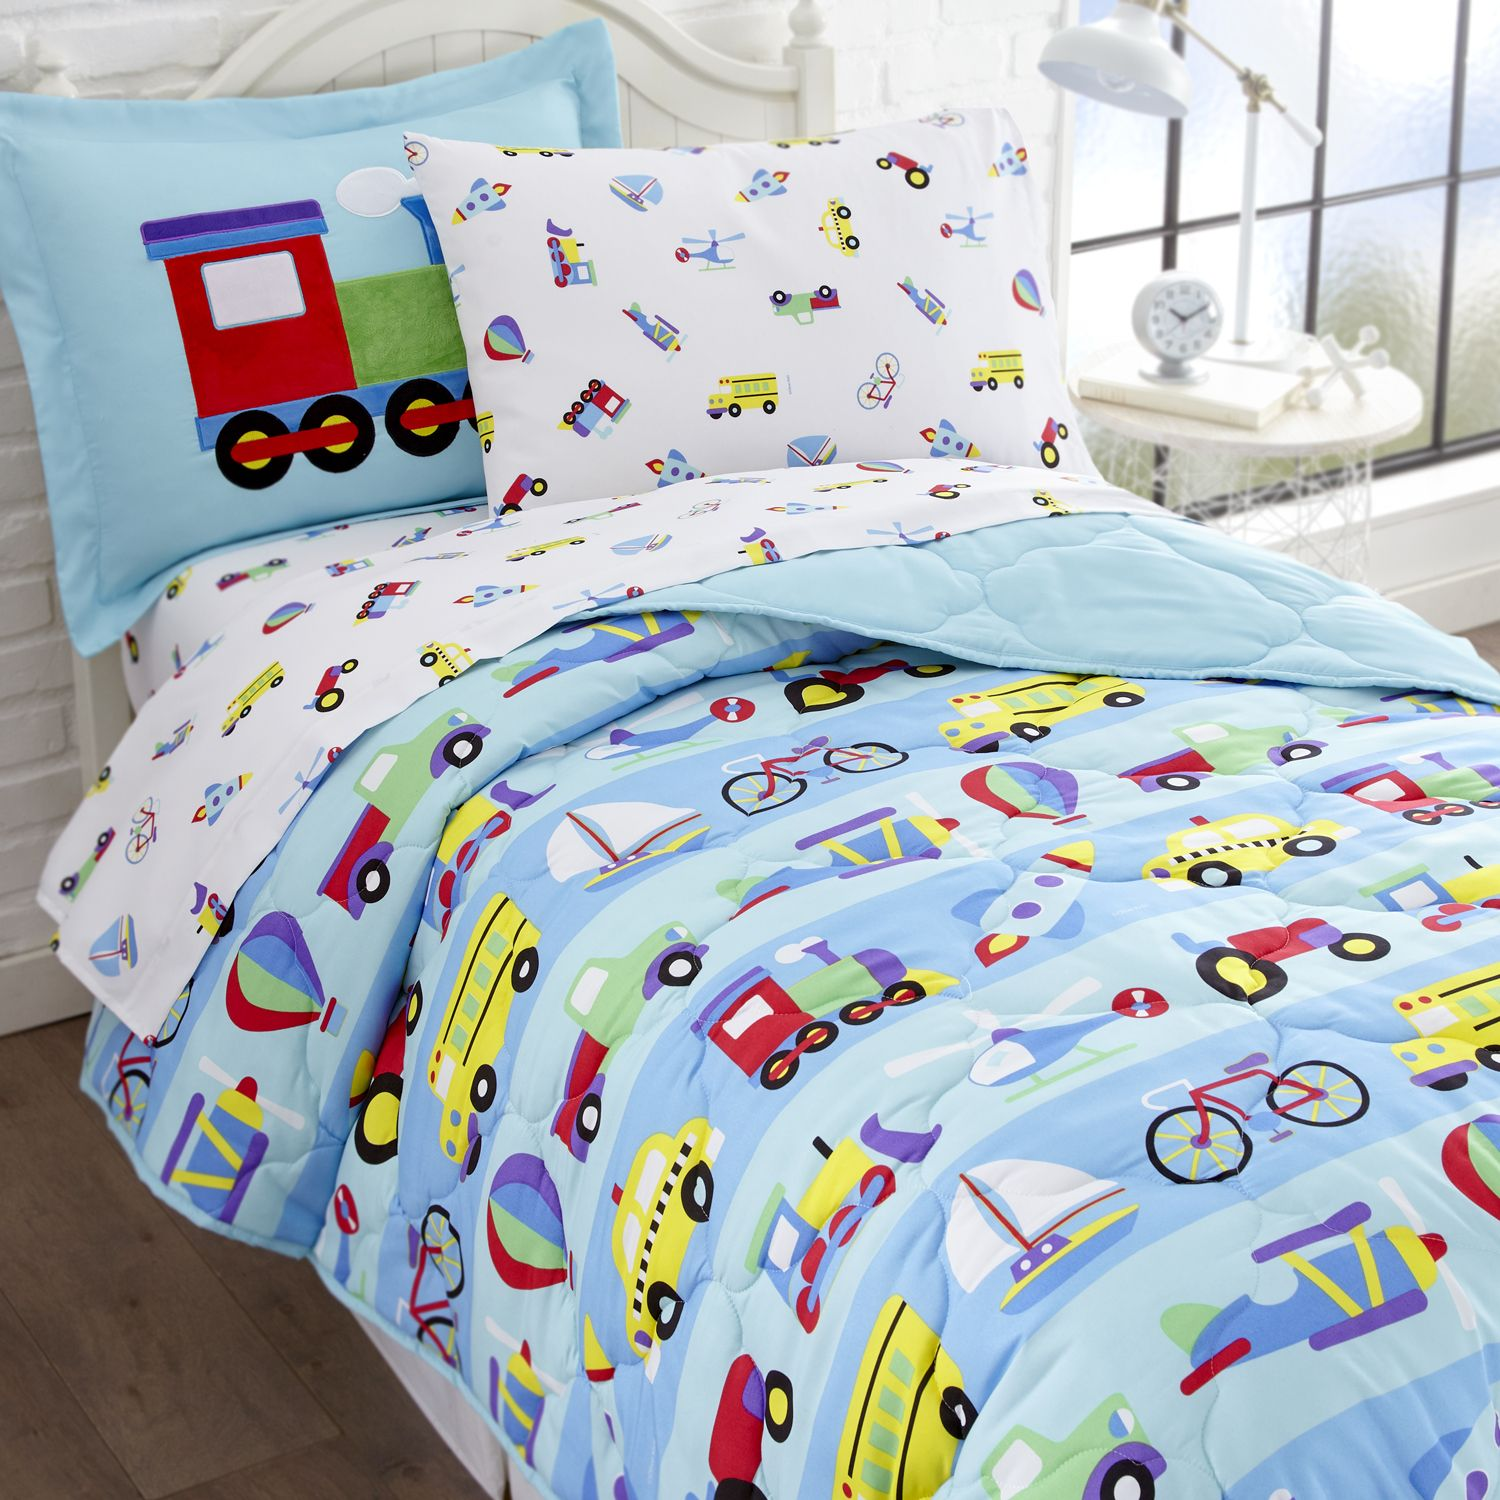 Blue Transportation Train & Trucks Bedding Twin or Full Bed in a Bag